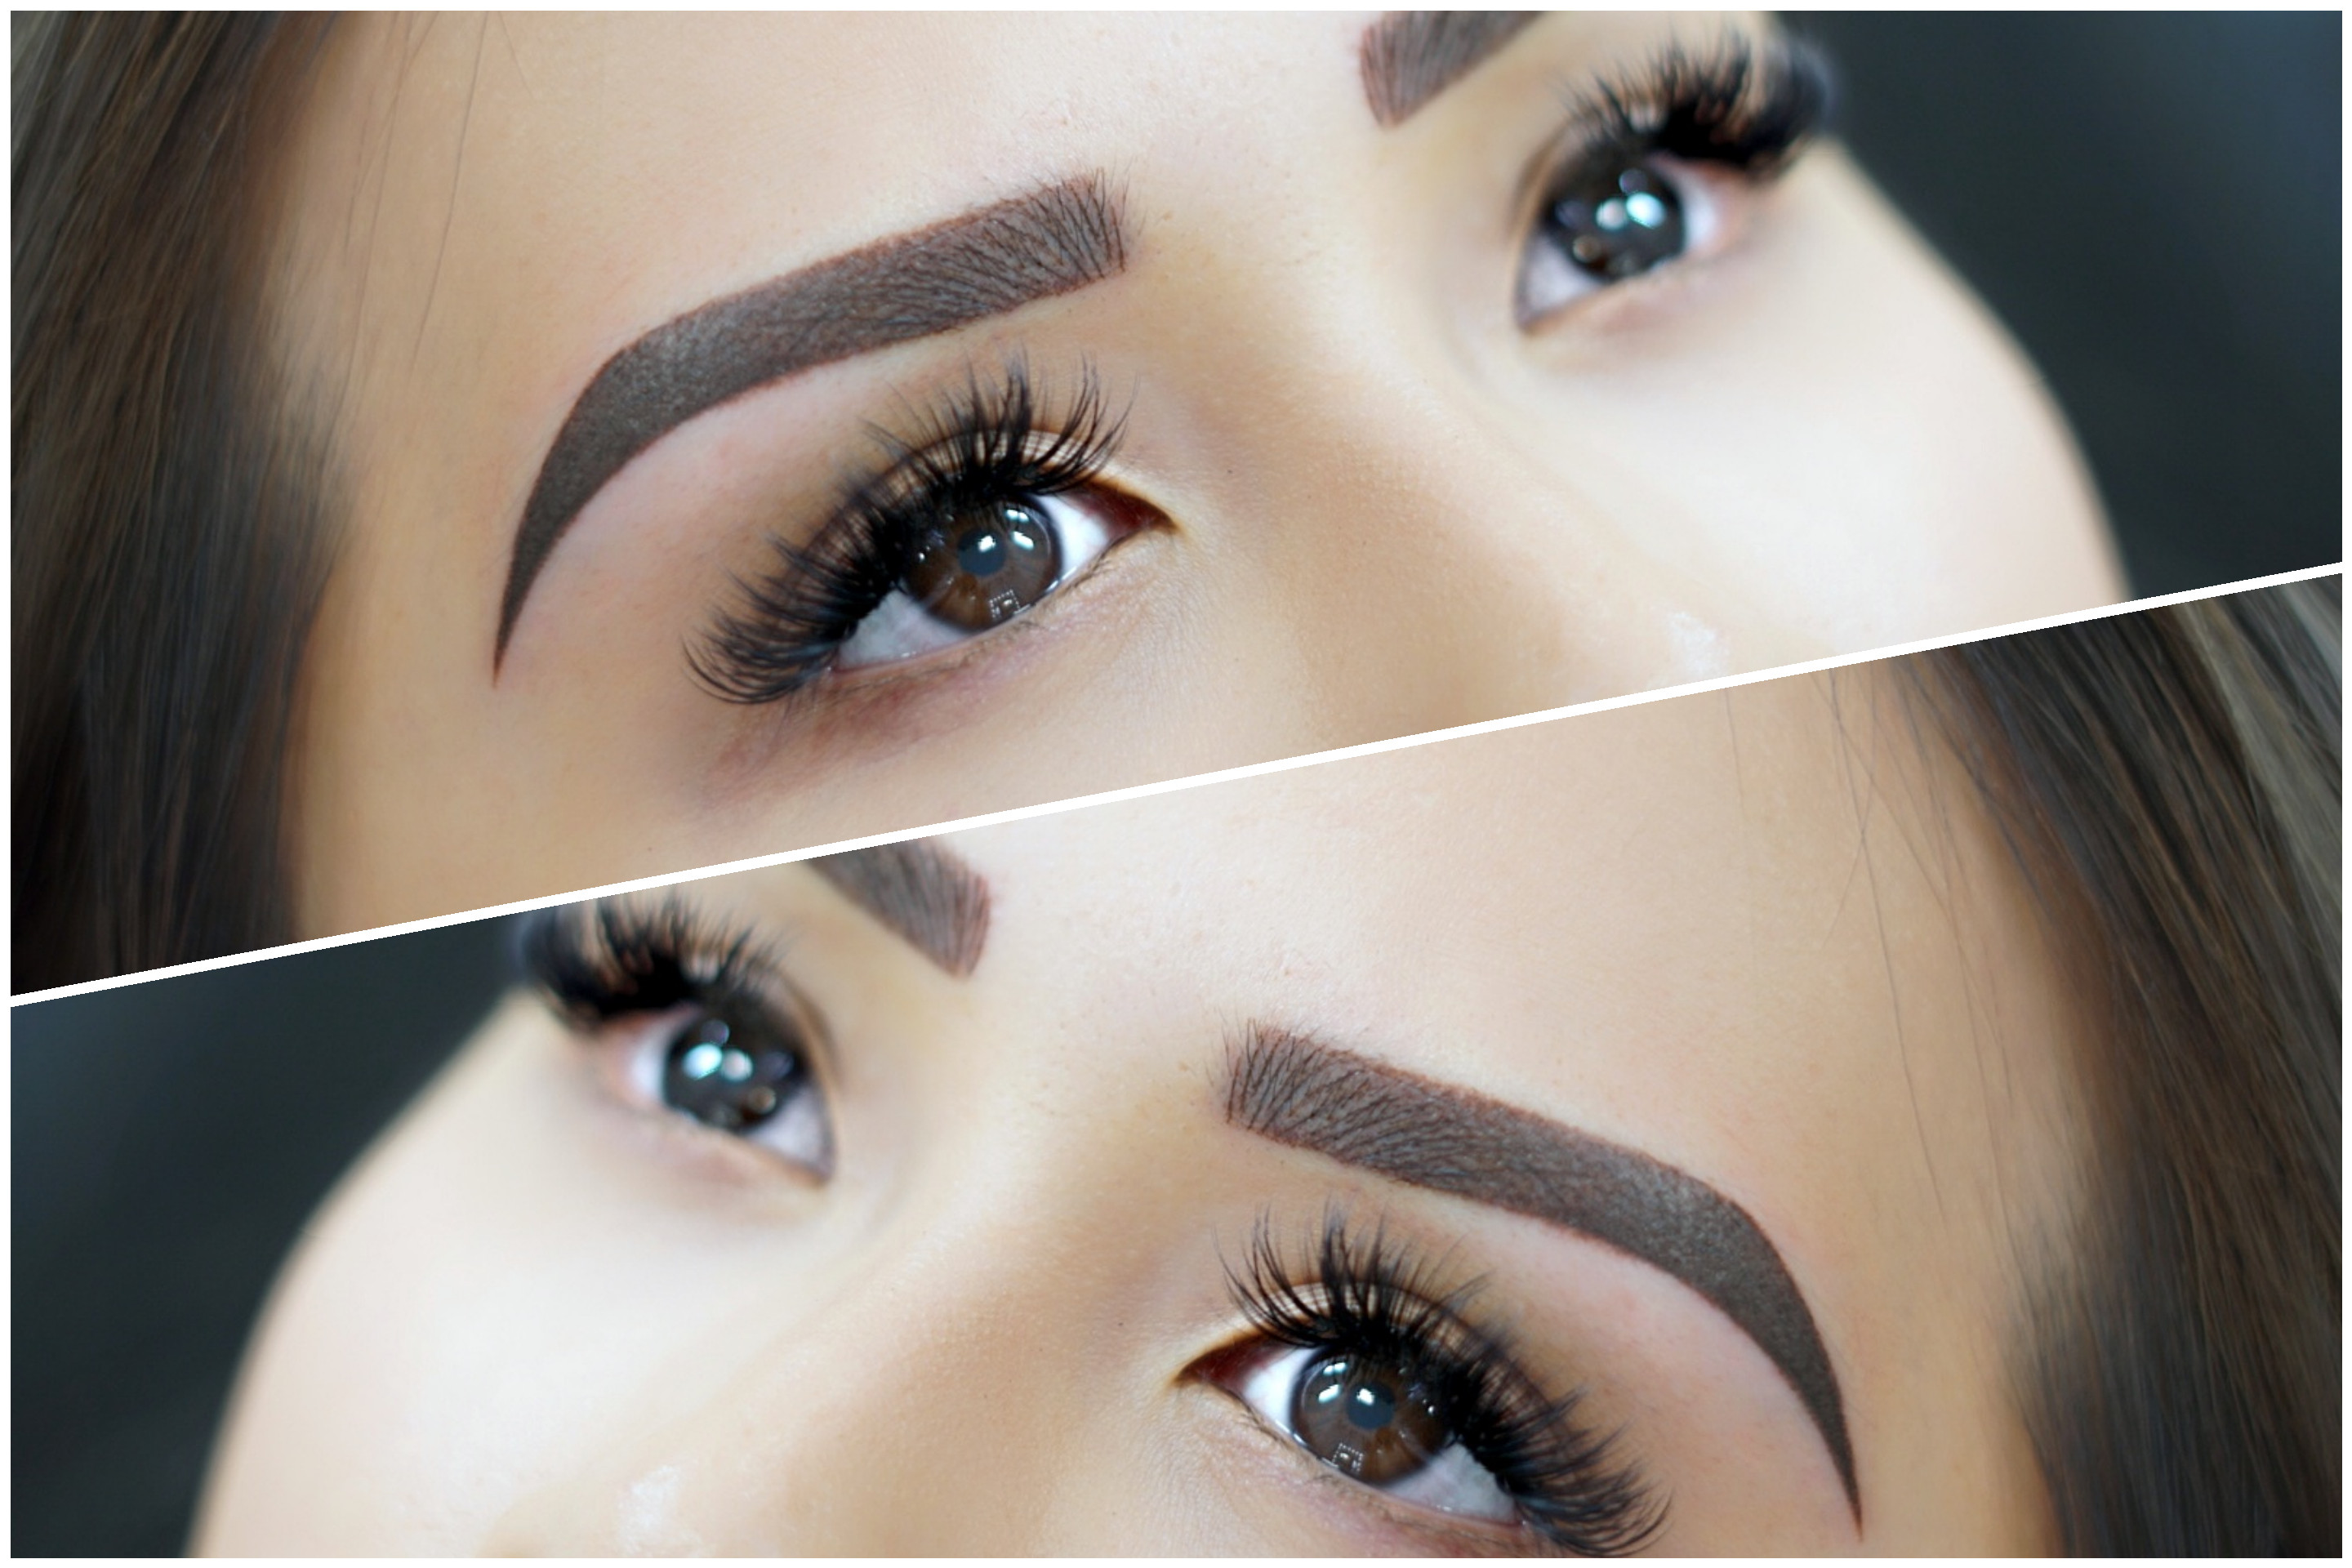 Eyebrow Touch-Up (Between 2-6 Months)